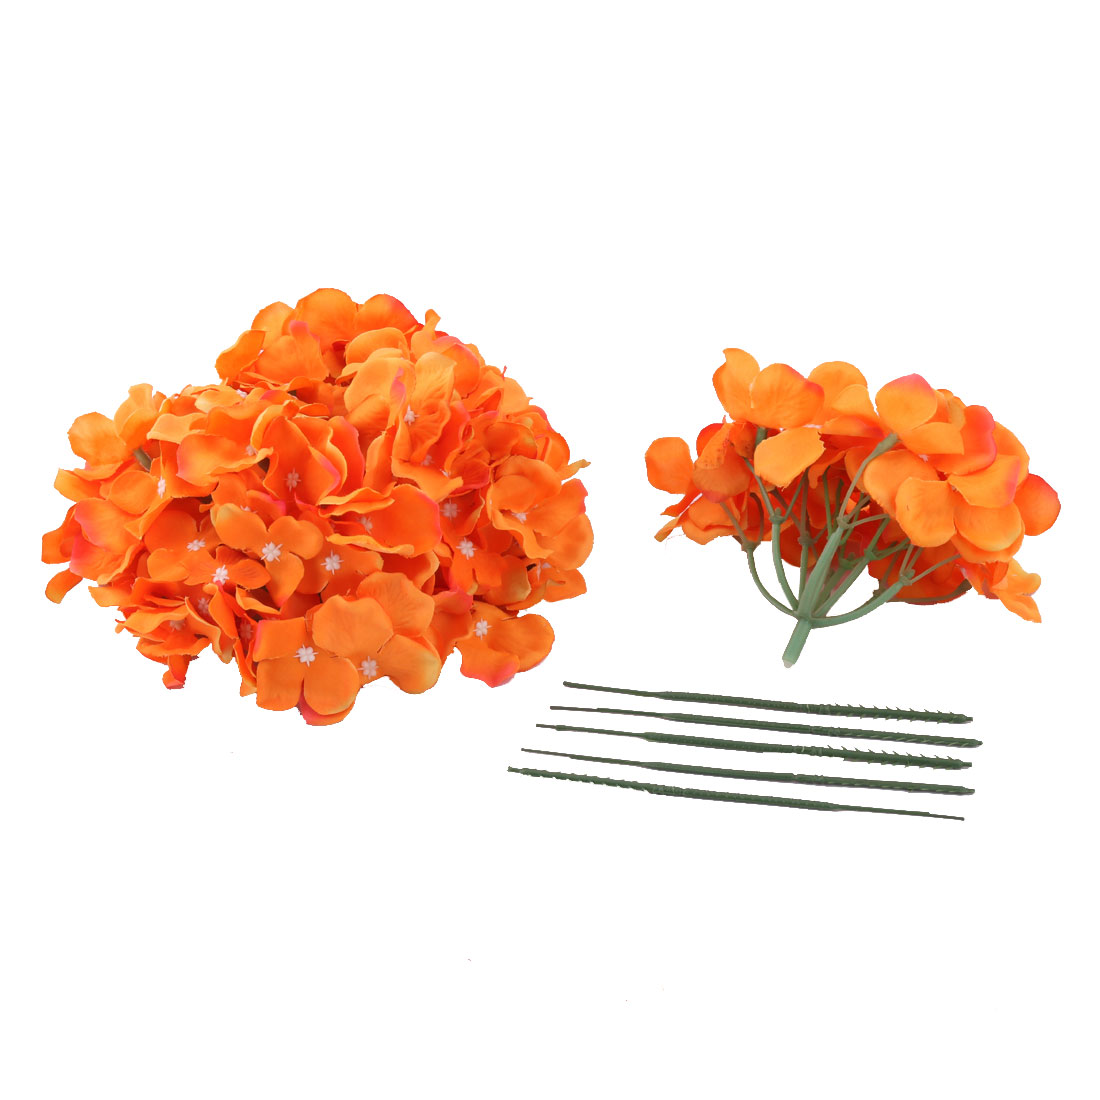 Festival Celebration Aritificial Flower Handcraft Garland Bouquet Decor Orange 5pcs